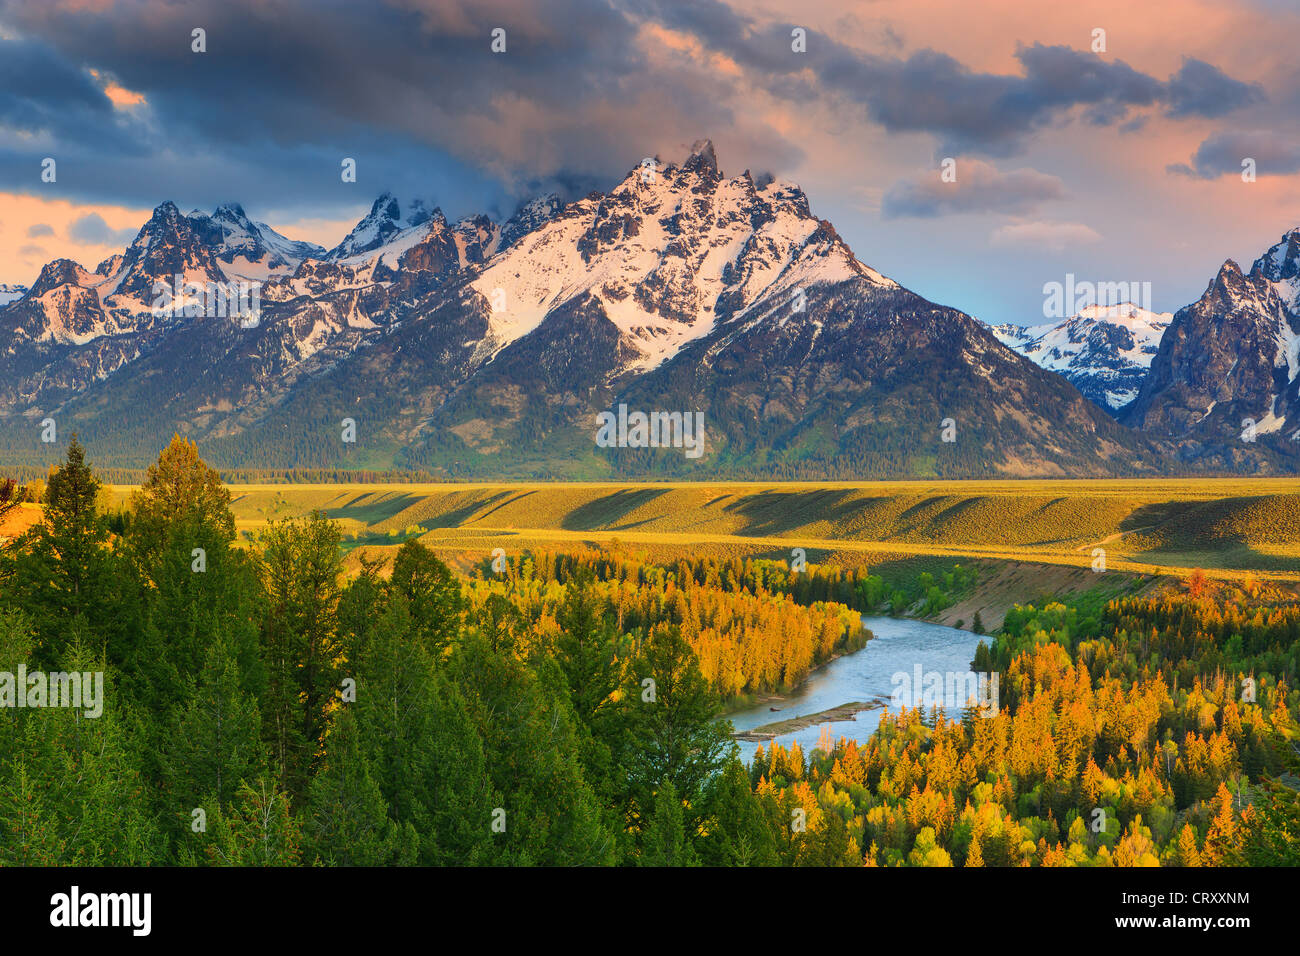 Sunrise at the Snake River Overlook at Grand Teton National Park in Wyoming, USA - Stock Image